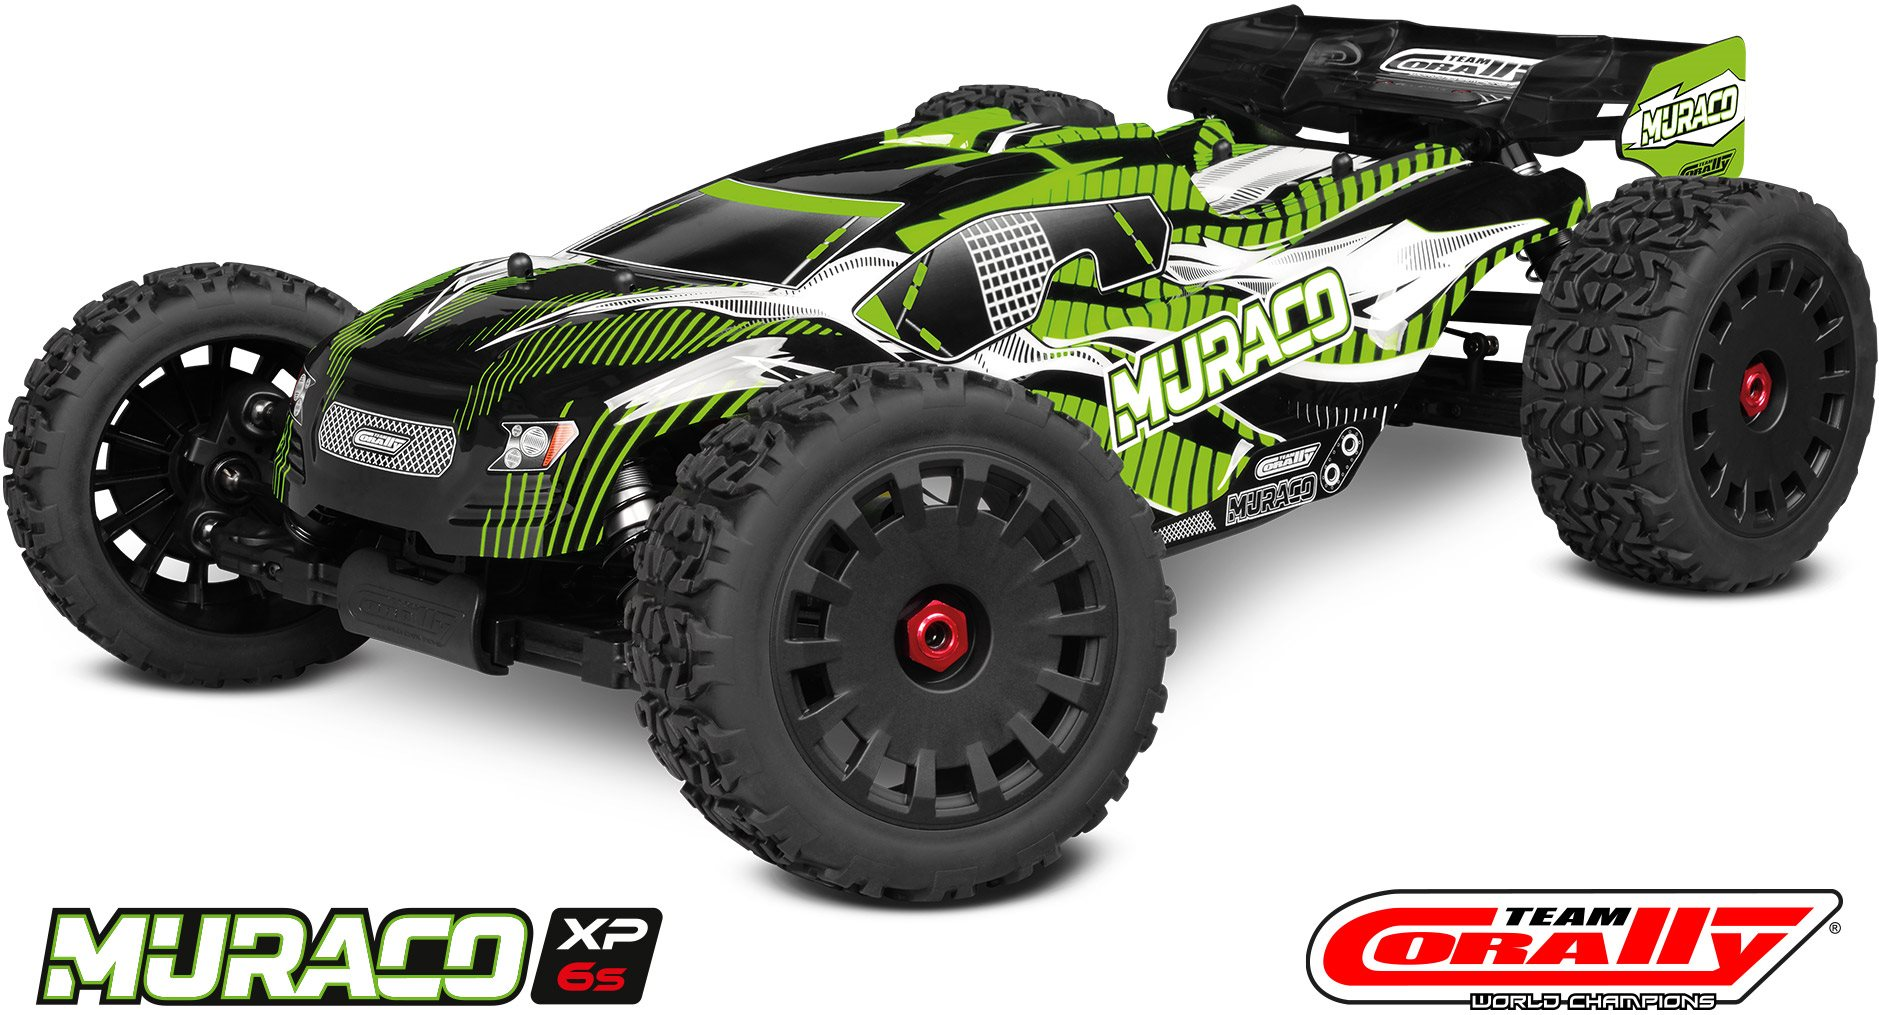 Team Corally Muraco Xp 6S 1/8 Truggy Lwb Rtr Brushless Power 6S